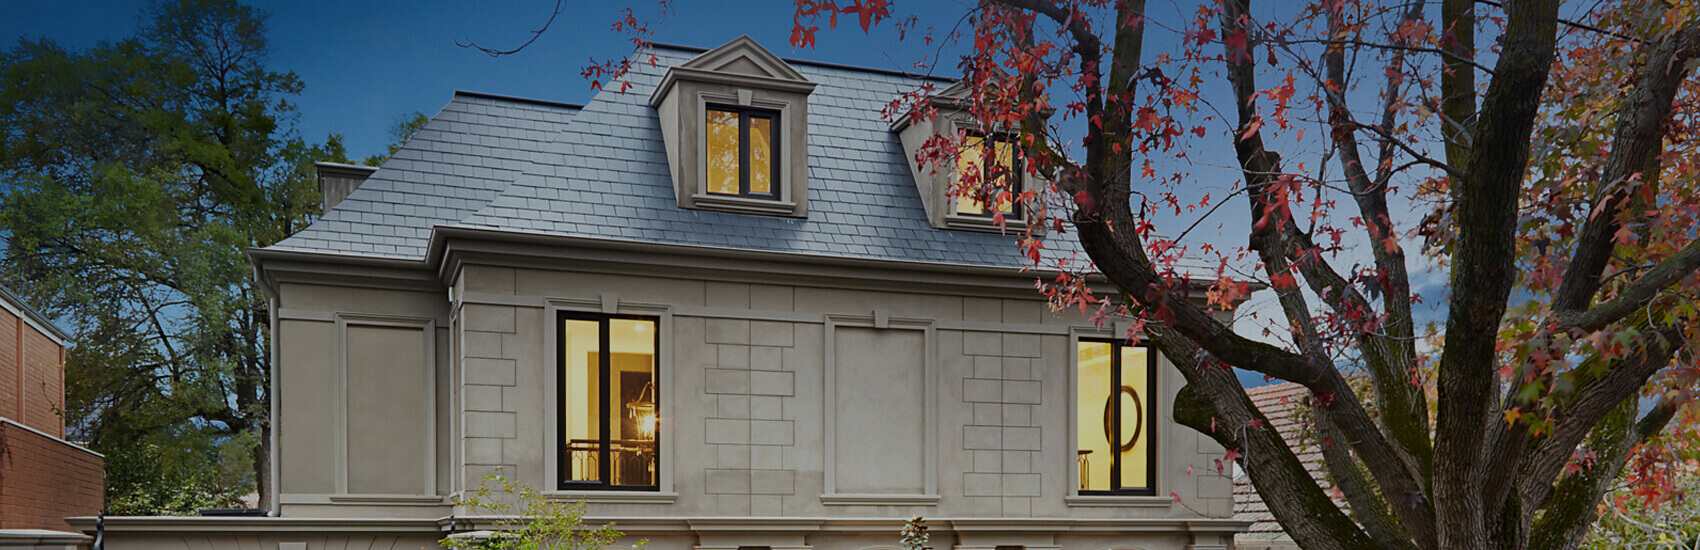 Benefits of Slate Roof Maintenance Services